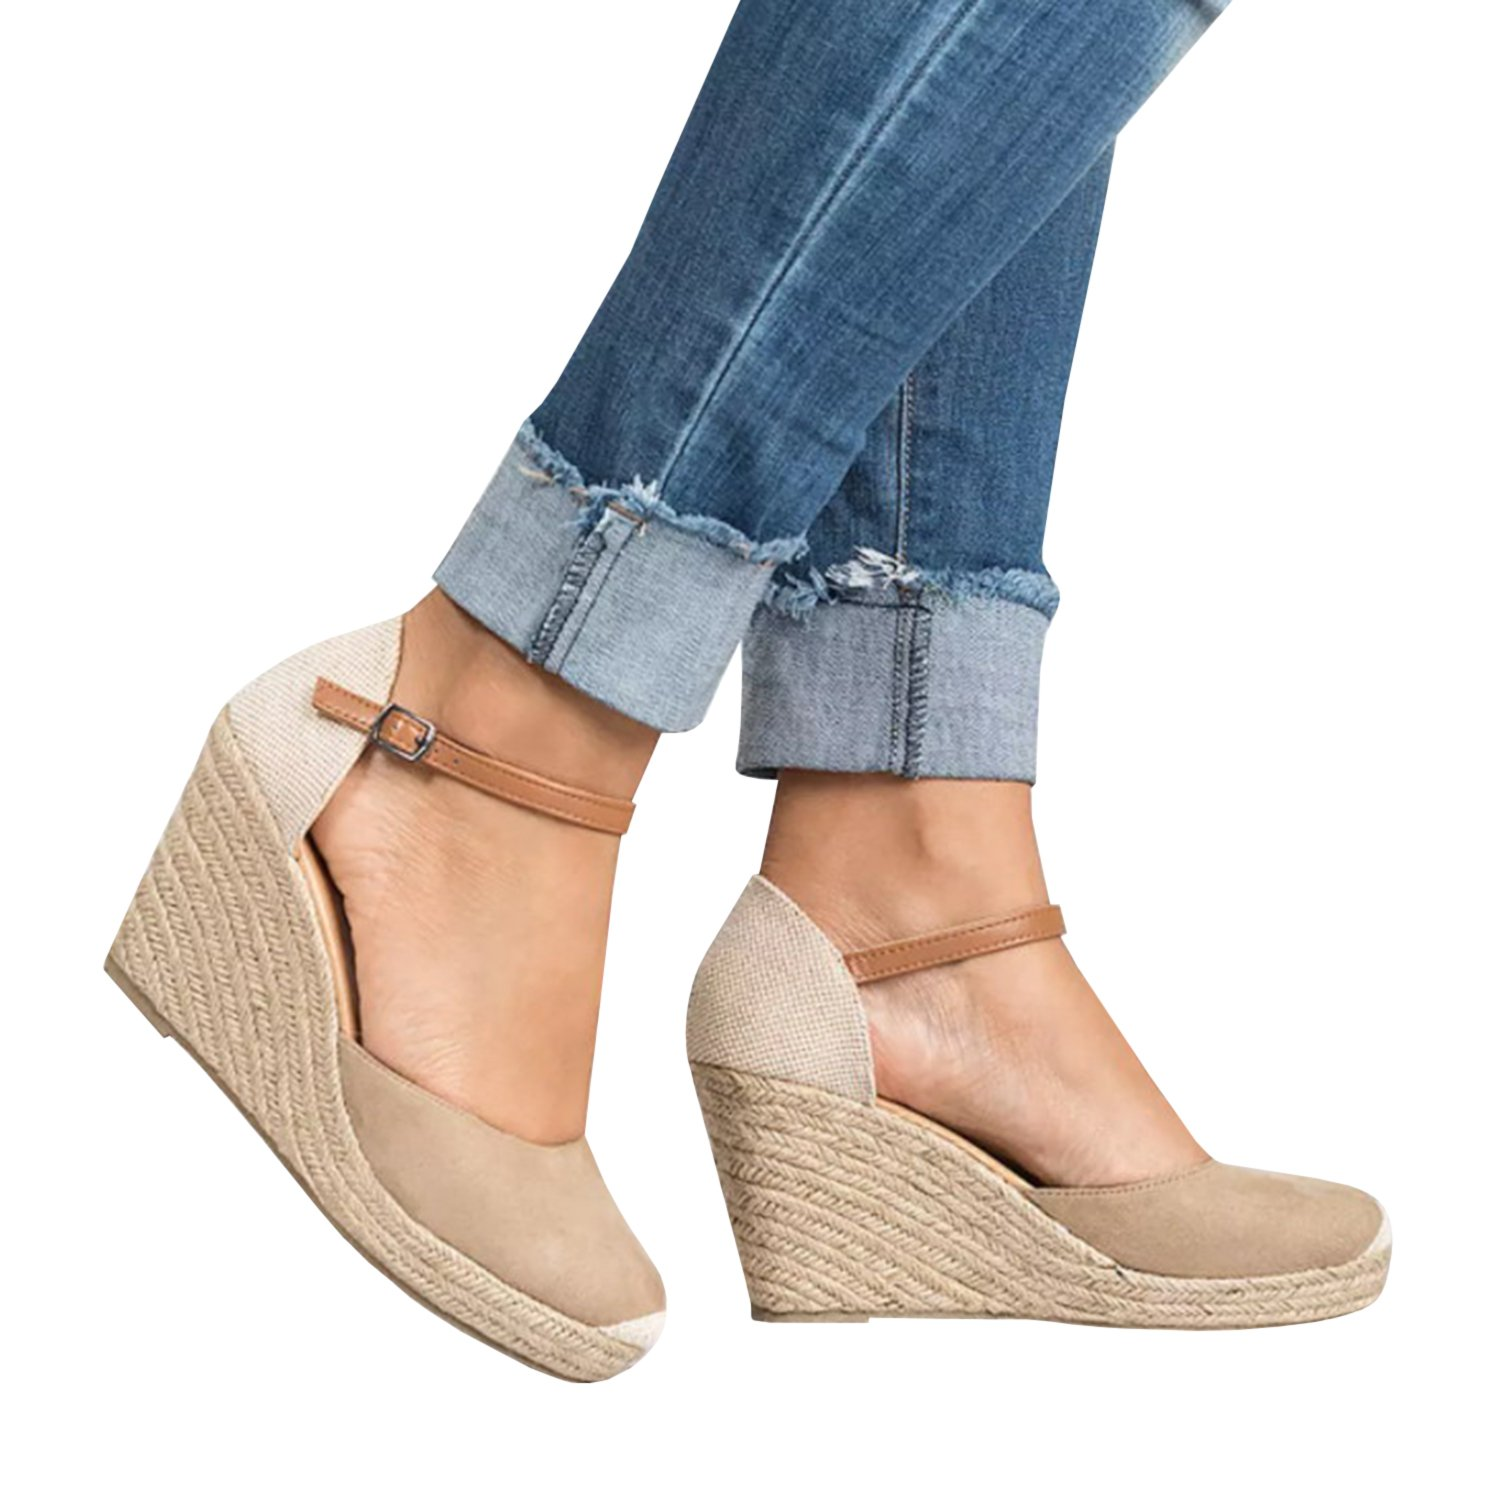 Feel Show Womens Casual Summer Espadrille Wedge Sandals Fashion Strap Buckle Suede Platform Shoes B07C9VS7Z1 10B(M)US - EU Size 41|Beige